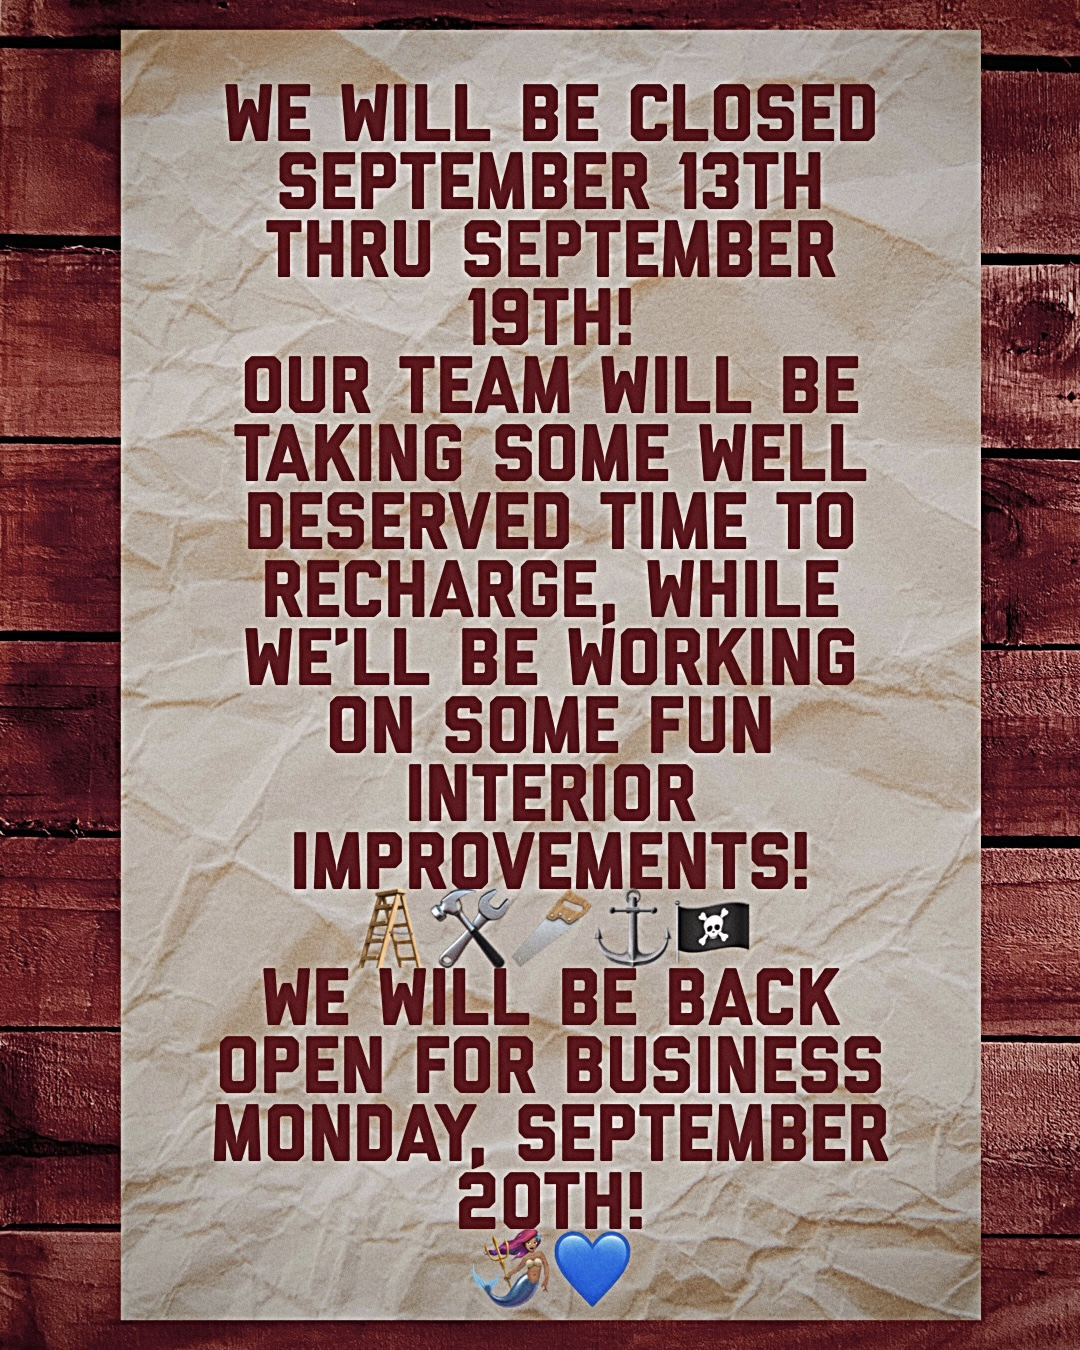 We will be close from September 13th -19th for Interior Improvements